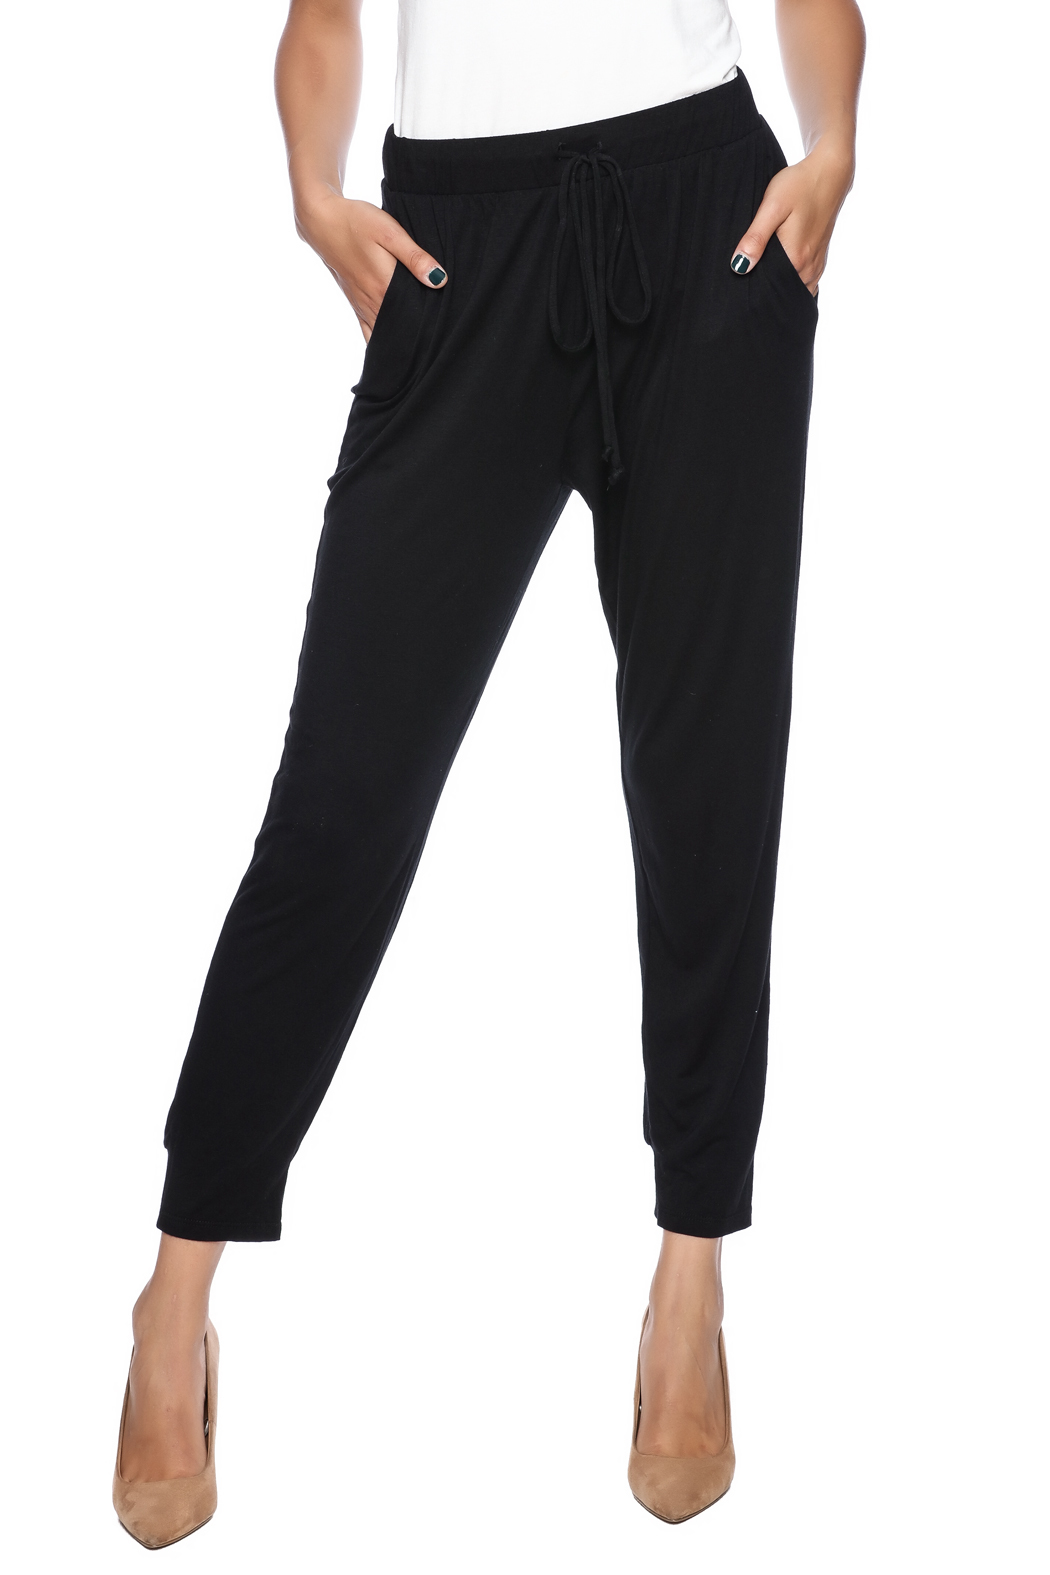 Weston Wear Black Kendra Pants - Front Cropped Image